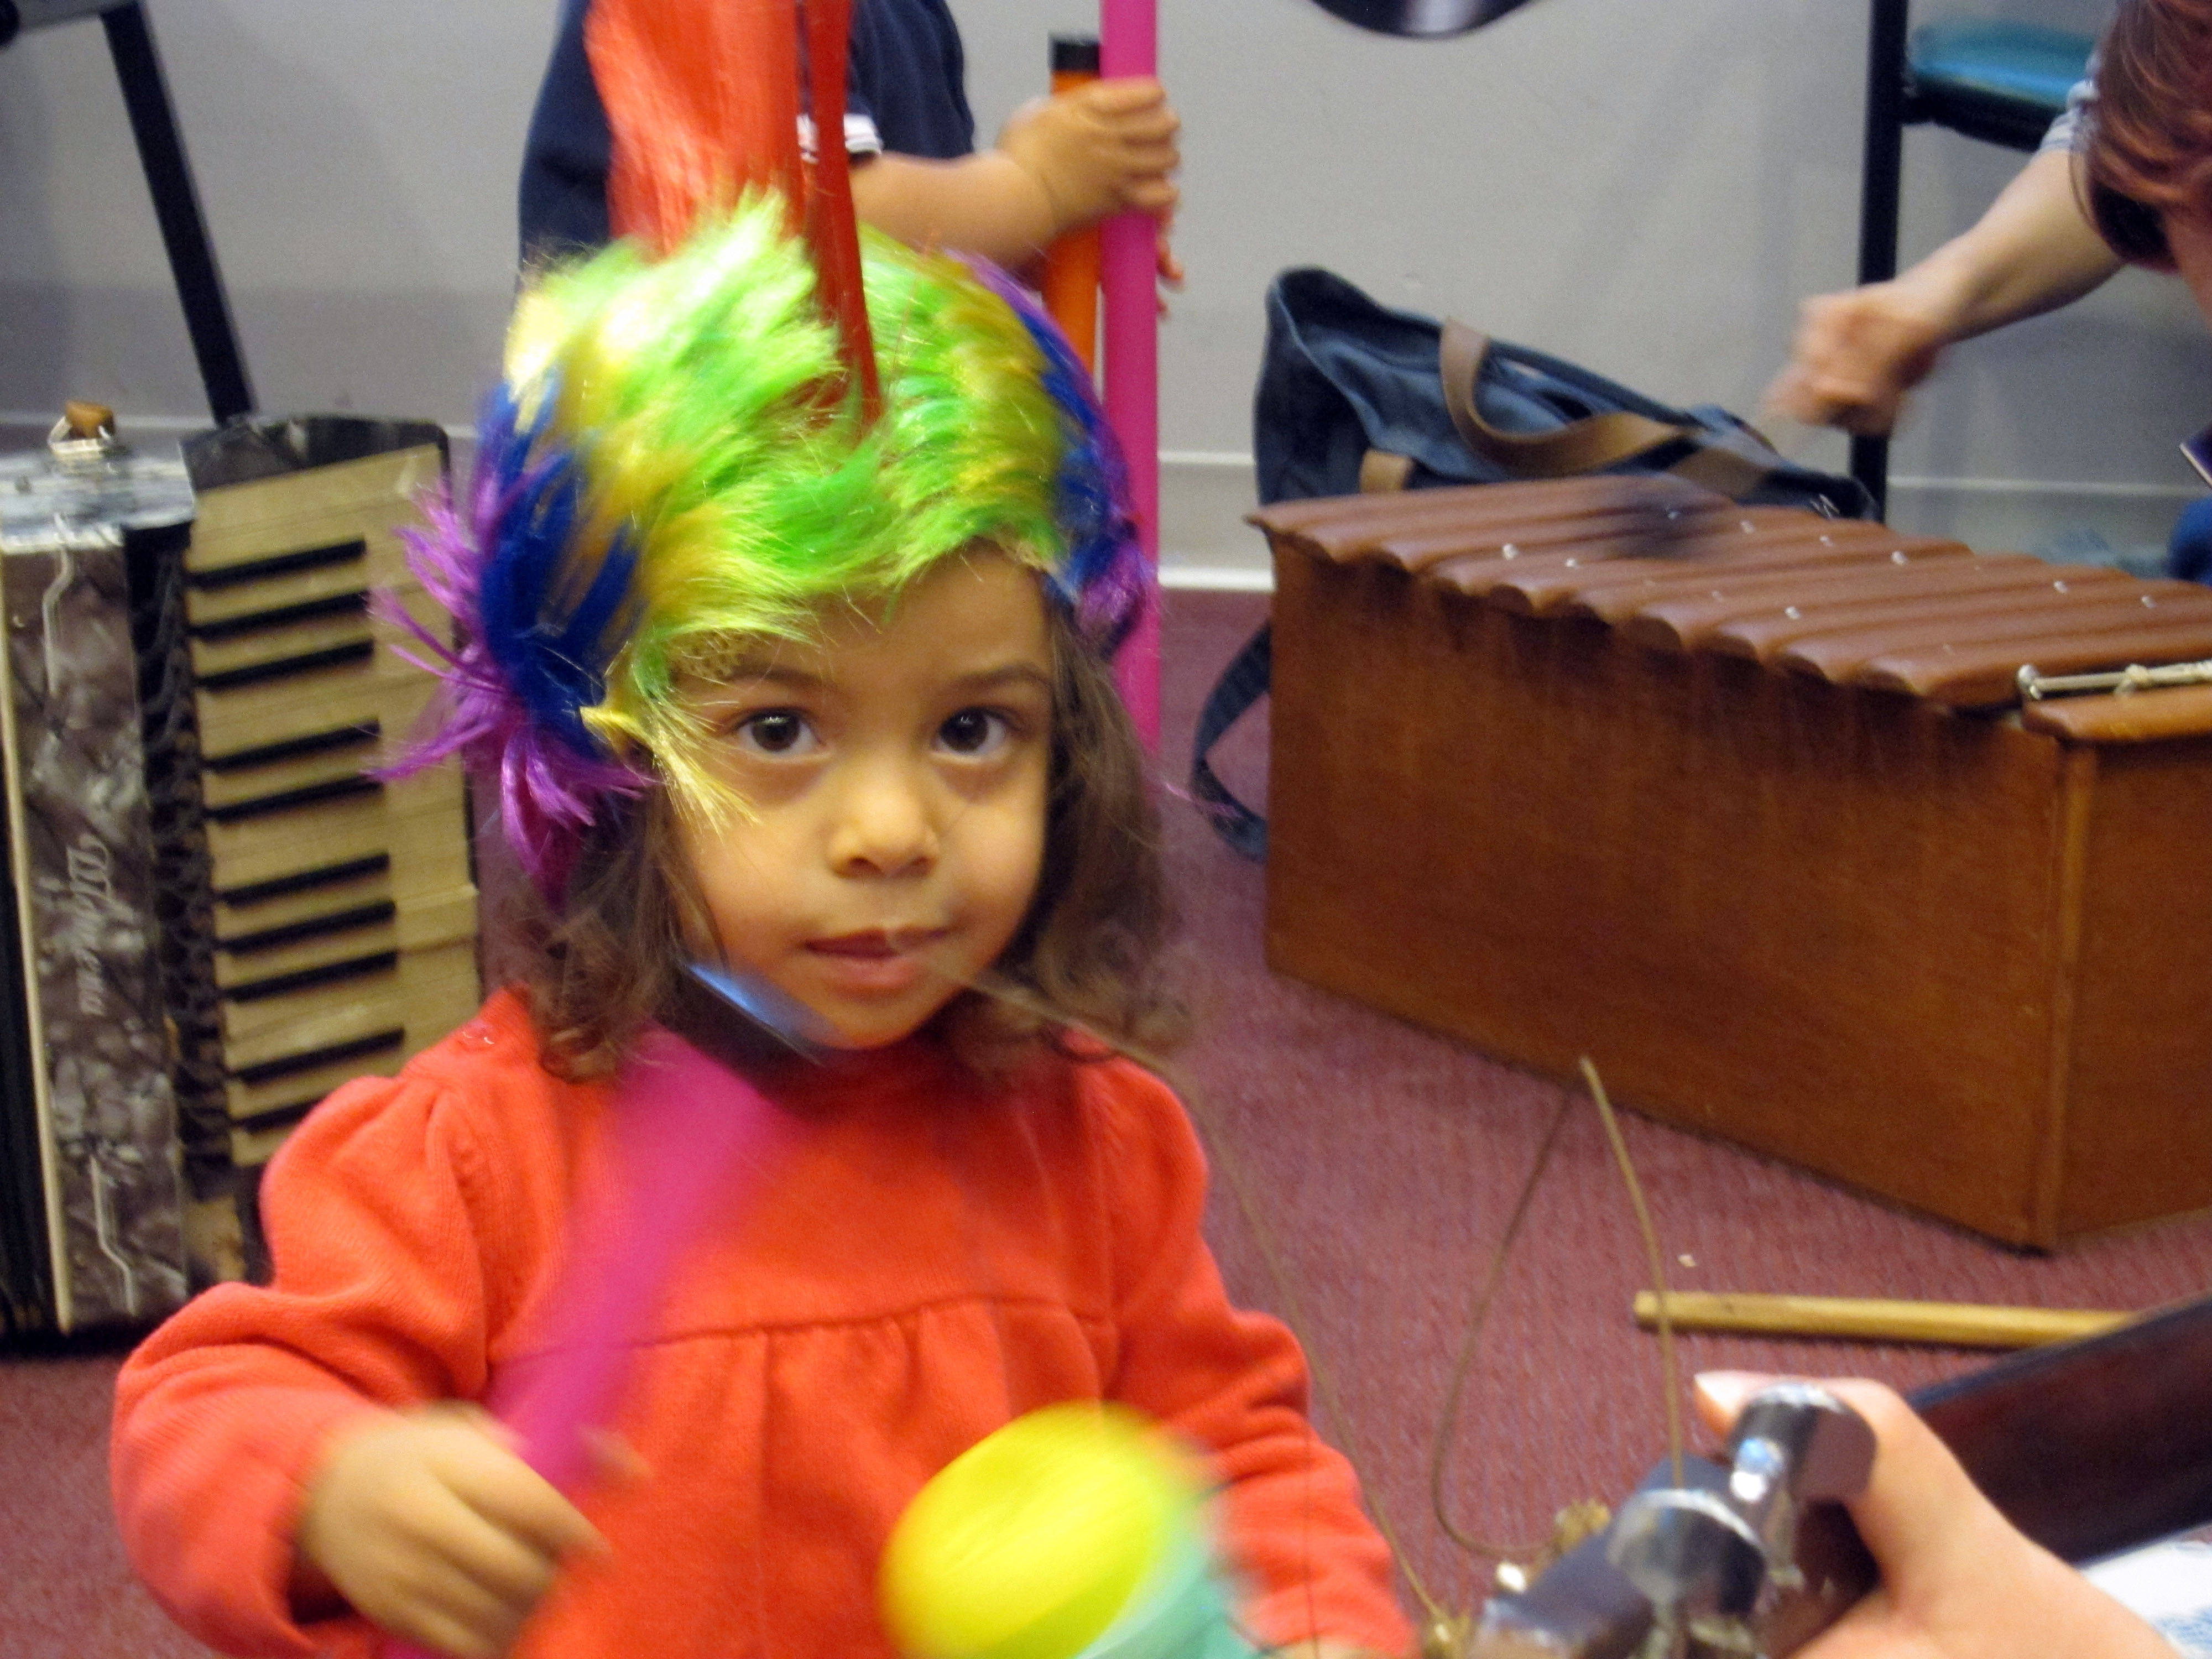 A toddler wears a rainbow-colored mohawk wig and waves around her baton.